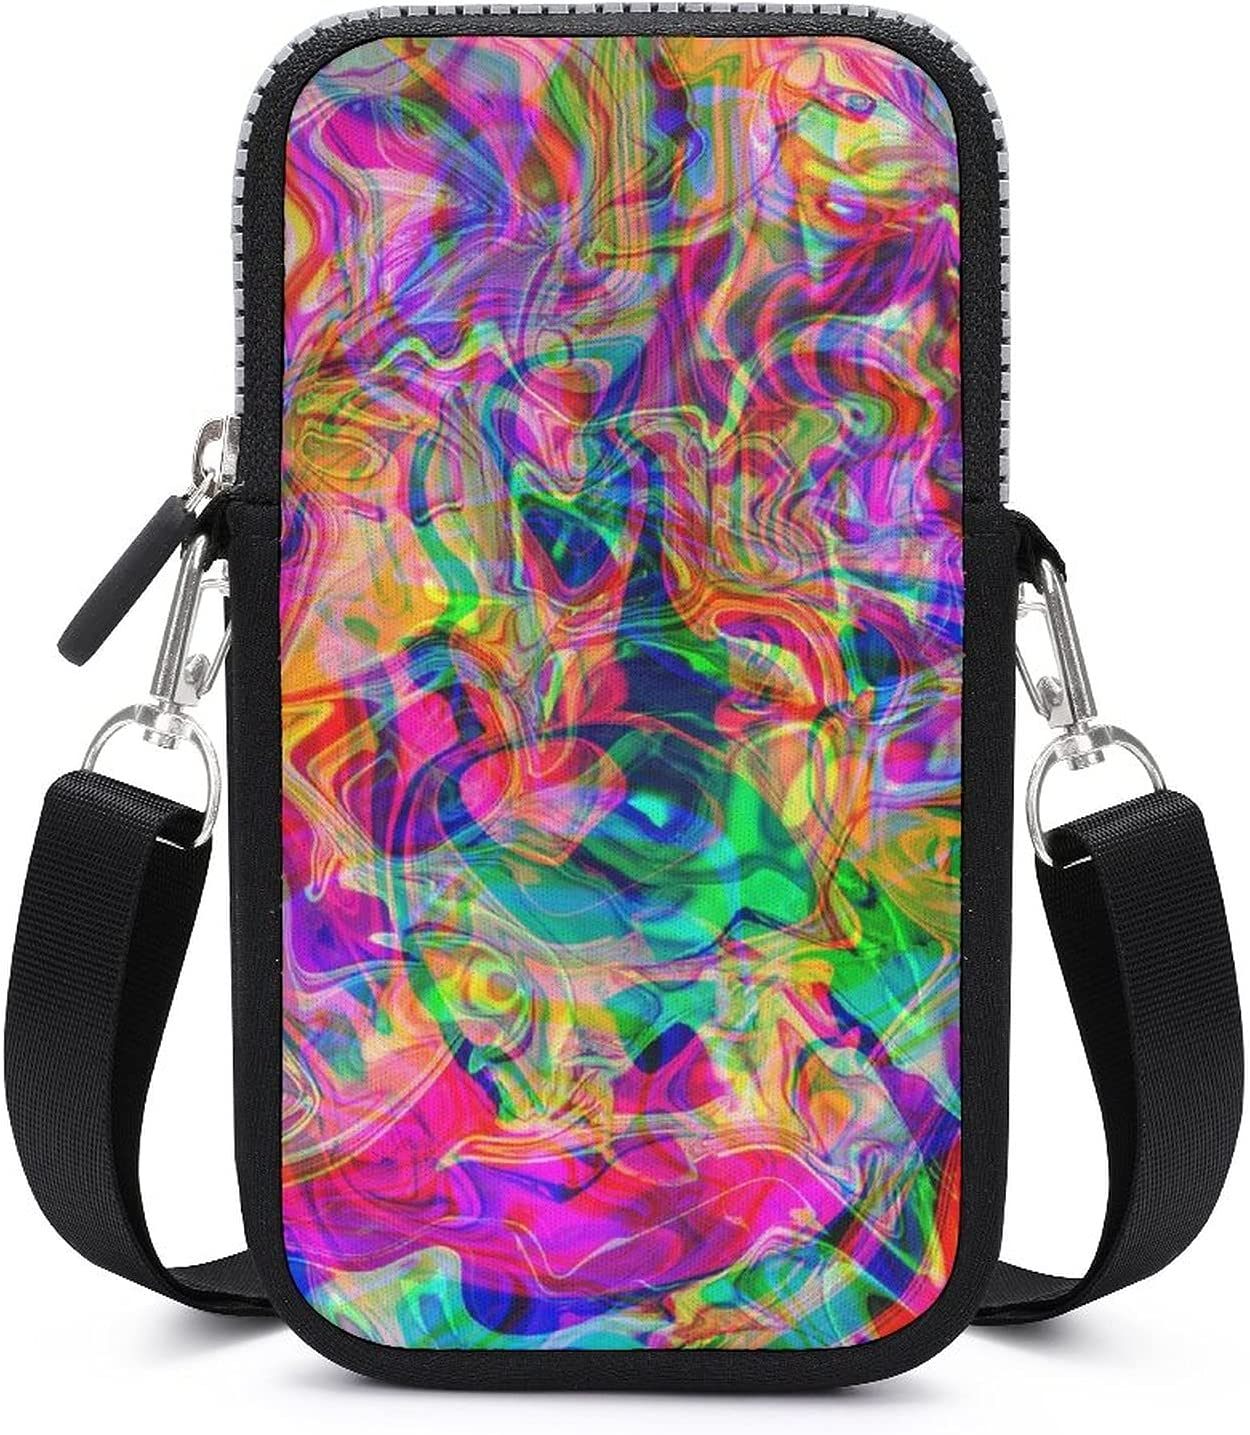 SWEET TANG Phone Hip Pop Multifunctional Psychedelic Trippy Colorful Surreal Abstract Art Holder - for 6 Inch Cell Phones with Adjustable Shoulder Strap, Storage Organizer Wristlet Convertible Bag